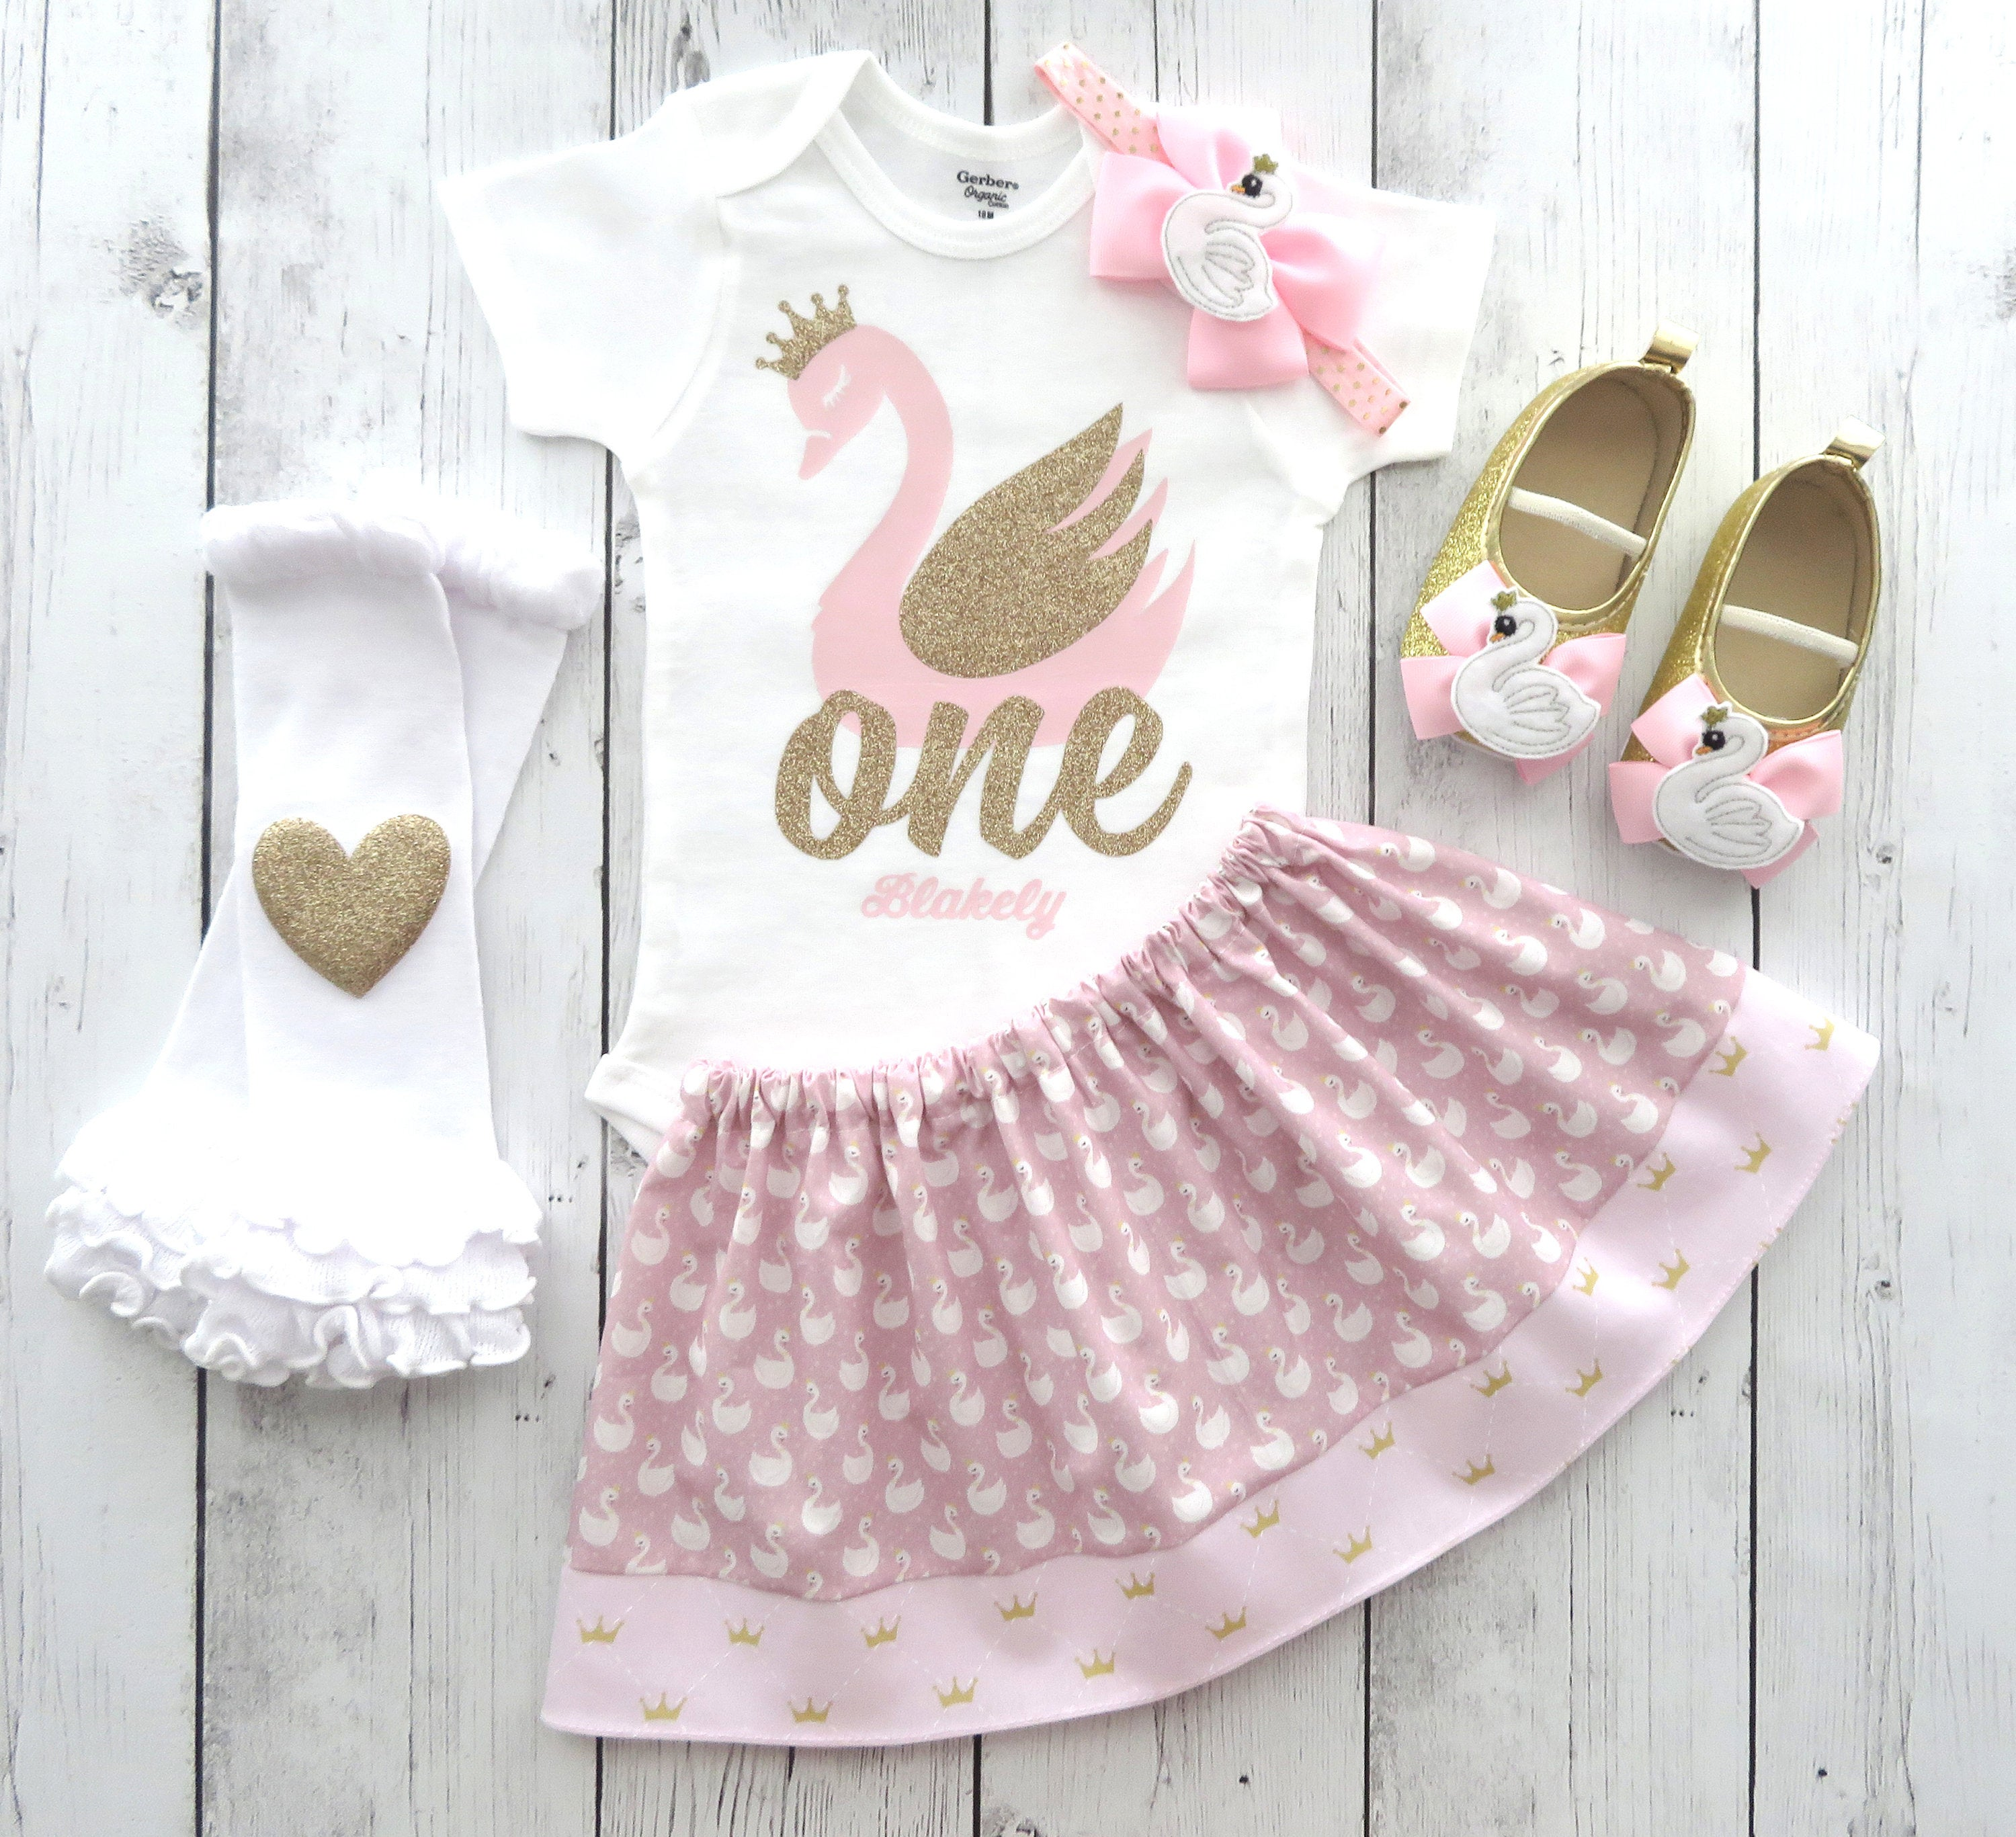 Swan First Birthday Outfit for girl in pink and gold - swan lake, personalized, swan 1st birthday outfit girl, pink gold swan bday outfit